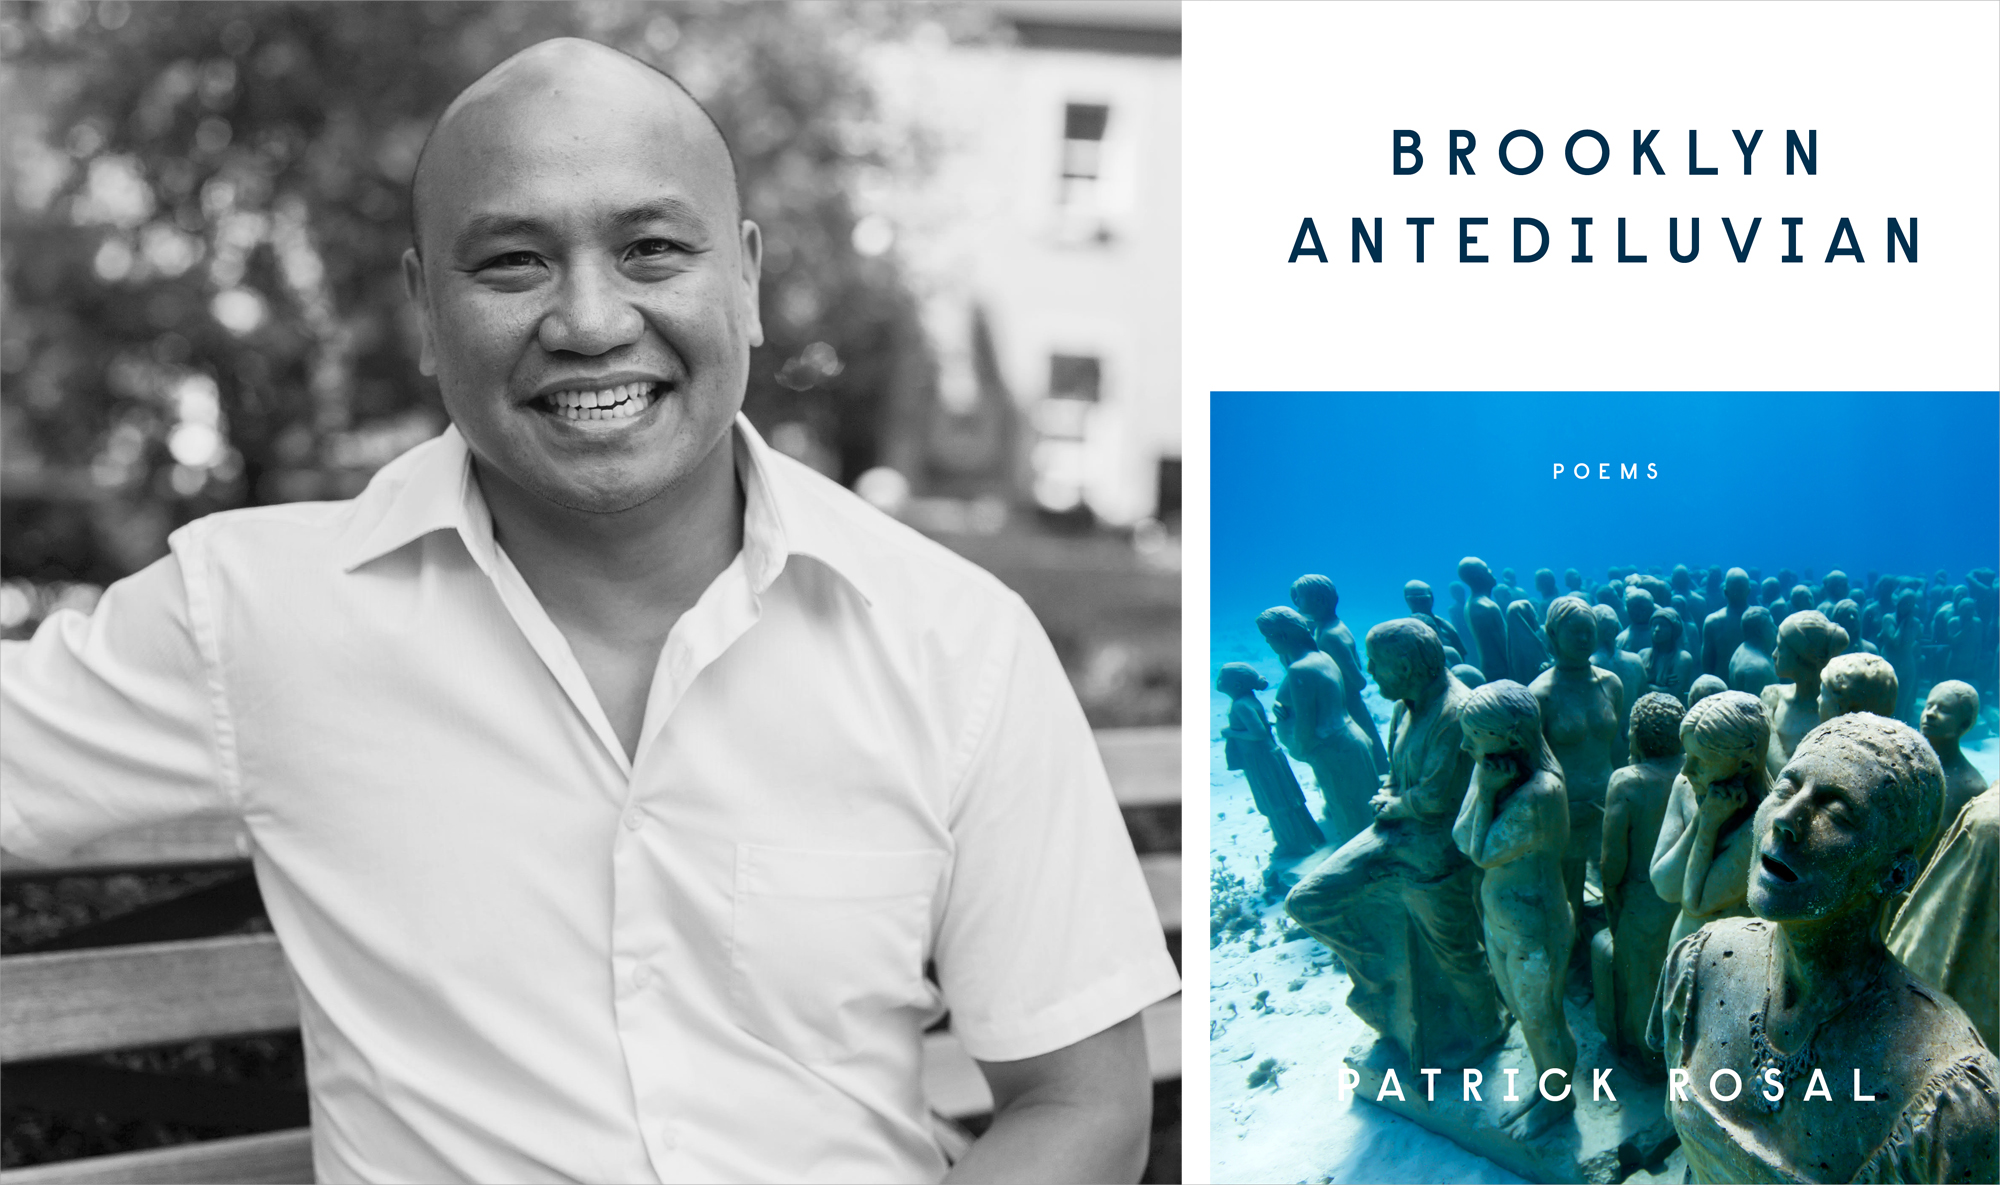 Patrick Rosal and BROOKLYN ANTEDILUVIAN Cover